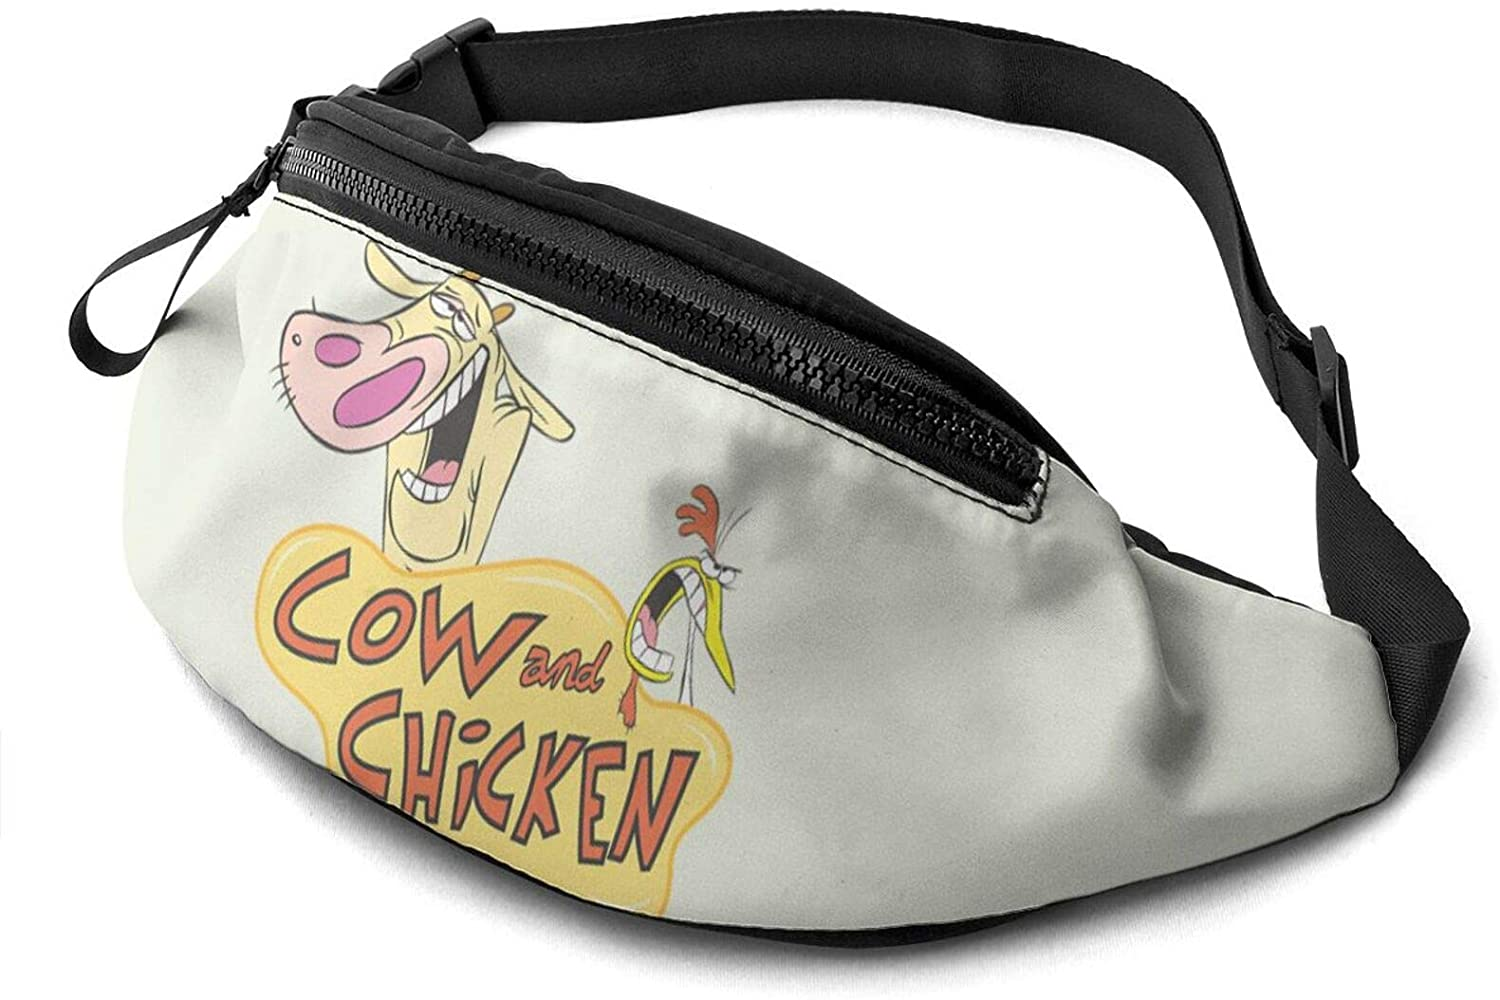 ATSH Cow and Chicken Waist Bag Water Resistant Large Hiking Fanny Pack Running Walking Traveling